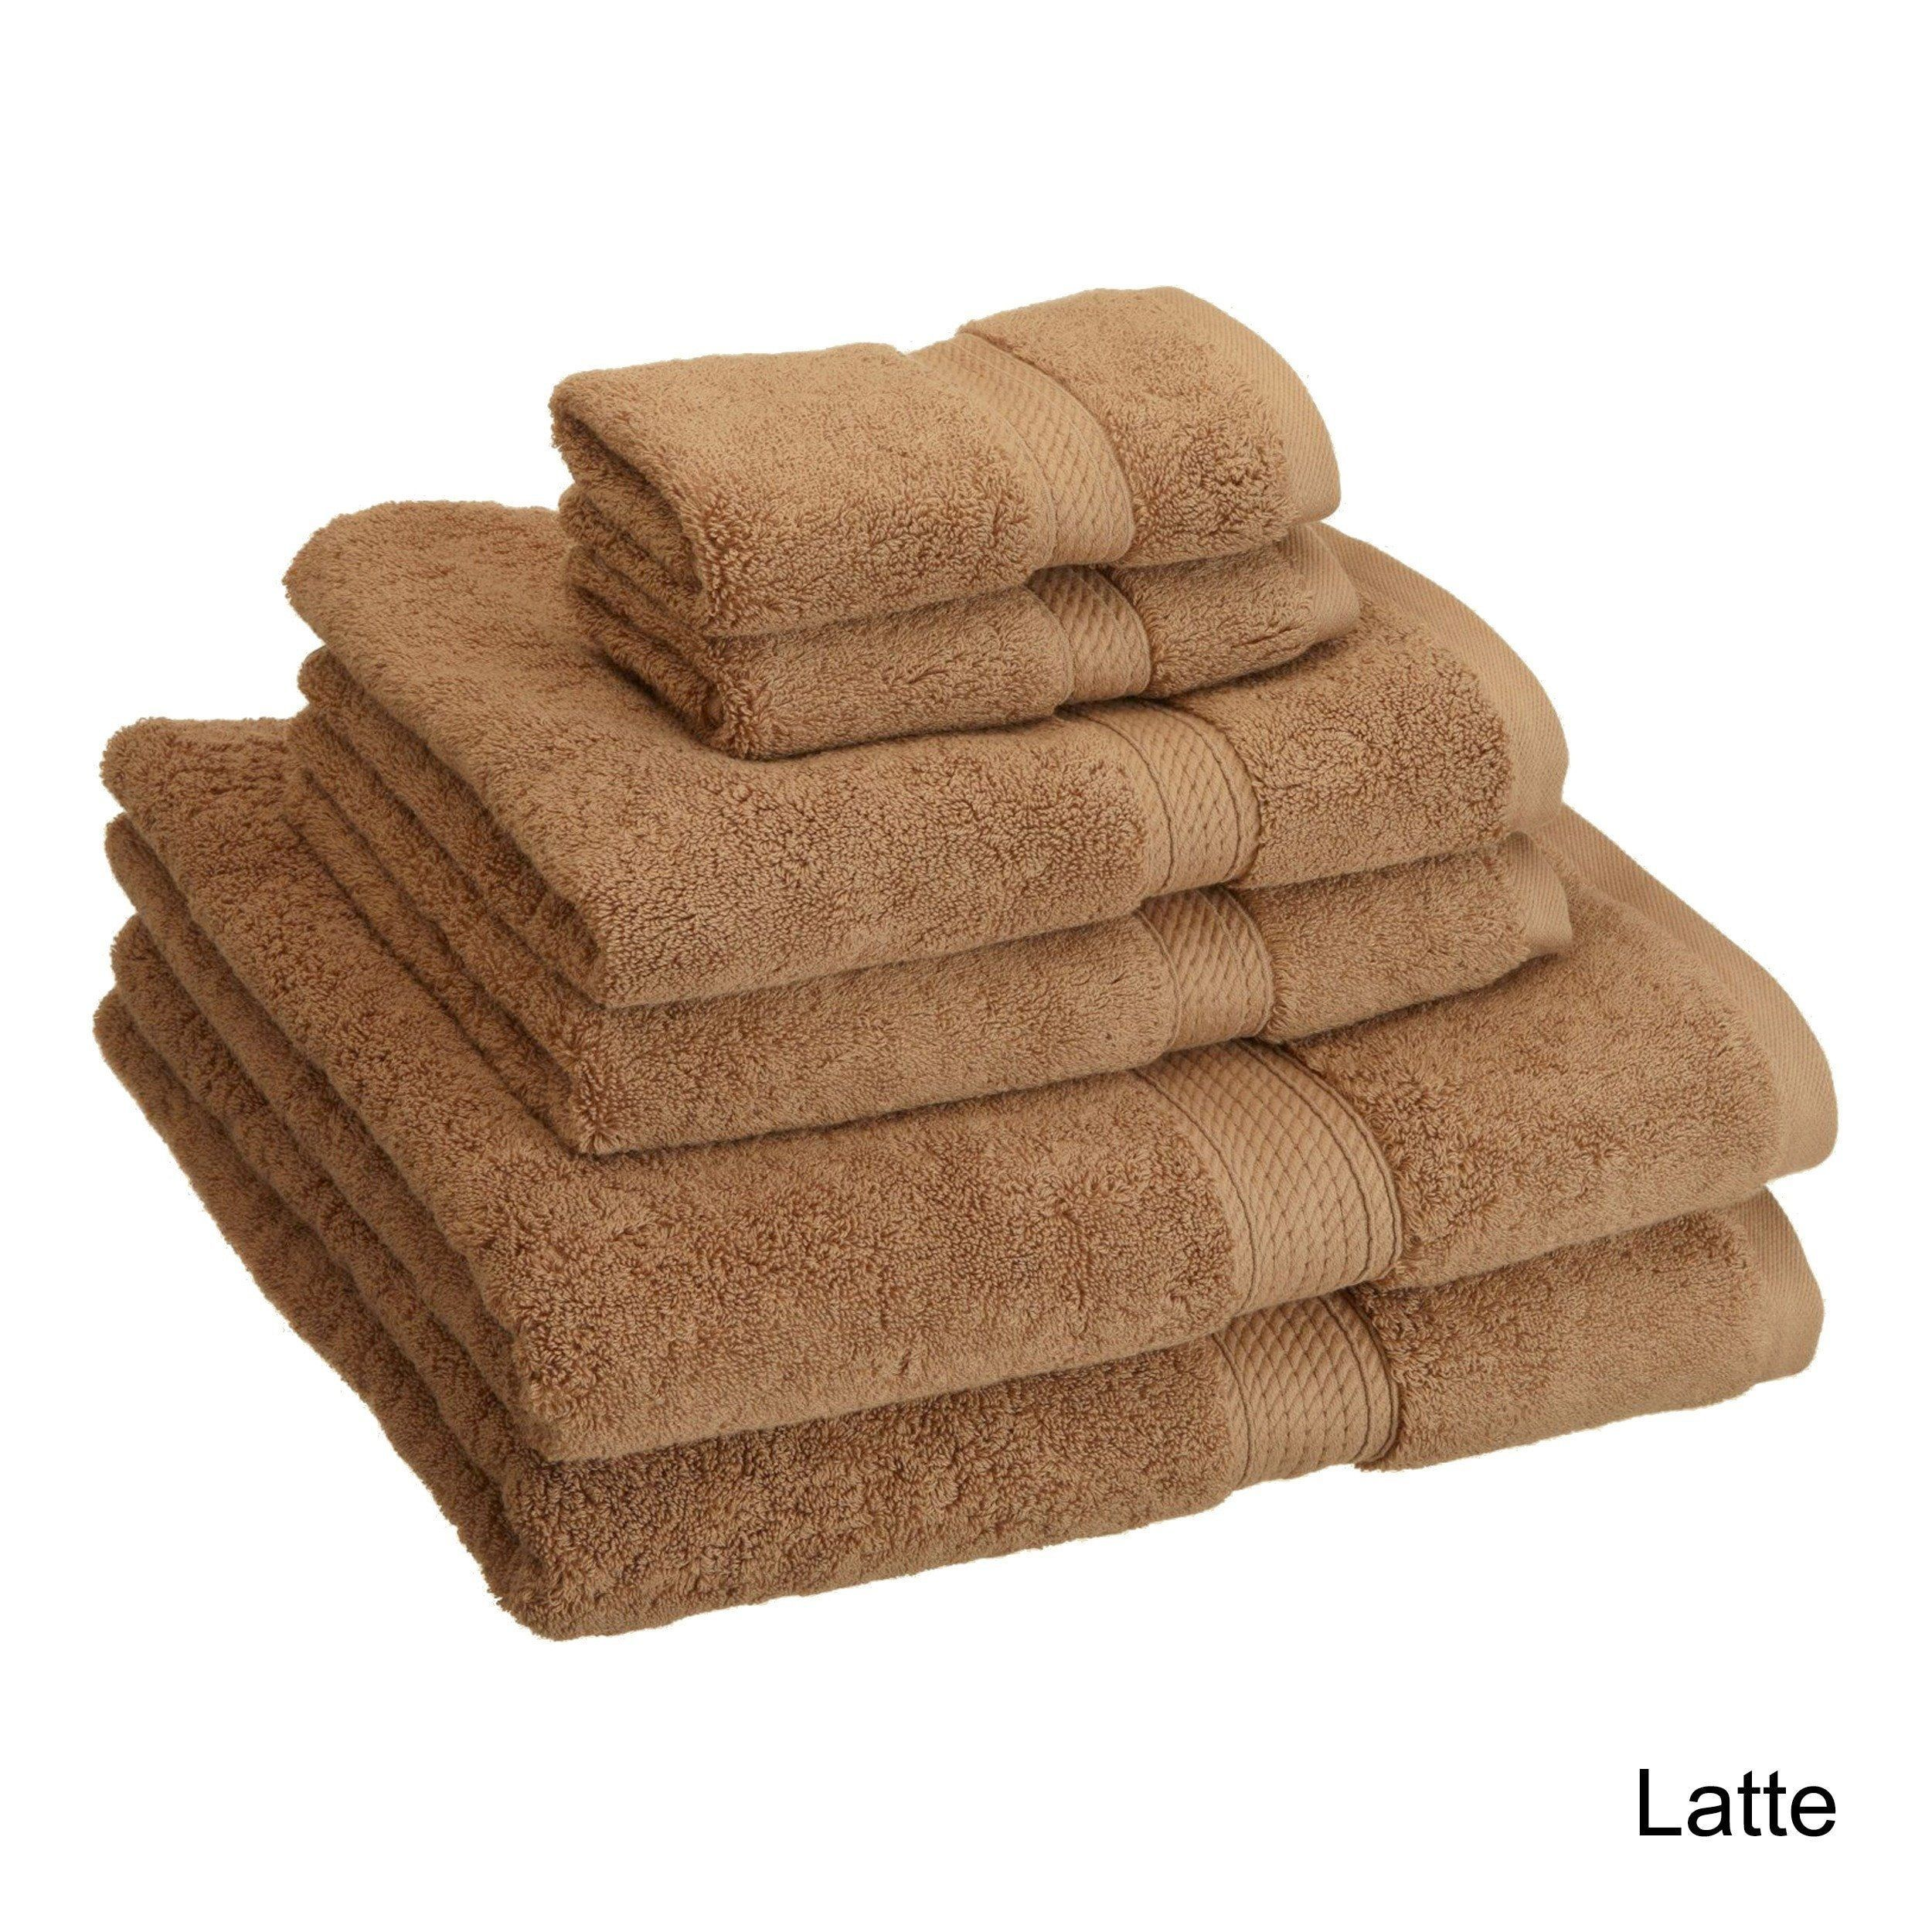 Superior Luxurious Absorbent 900 Gsm Combed Cotton 6 Piece Towel